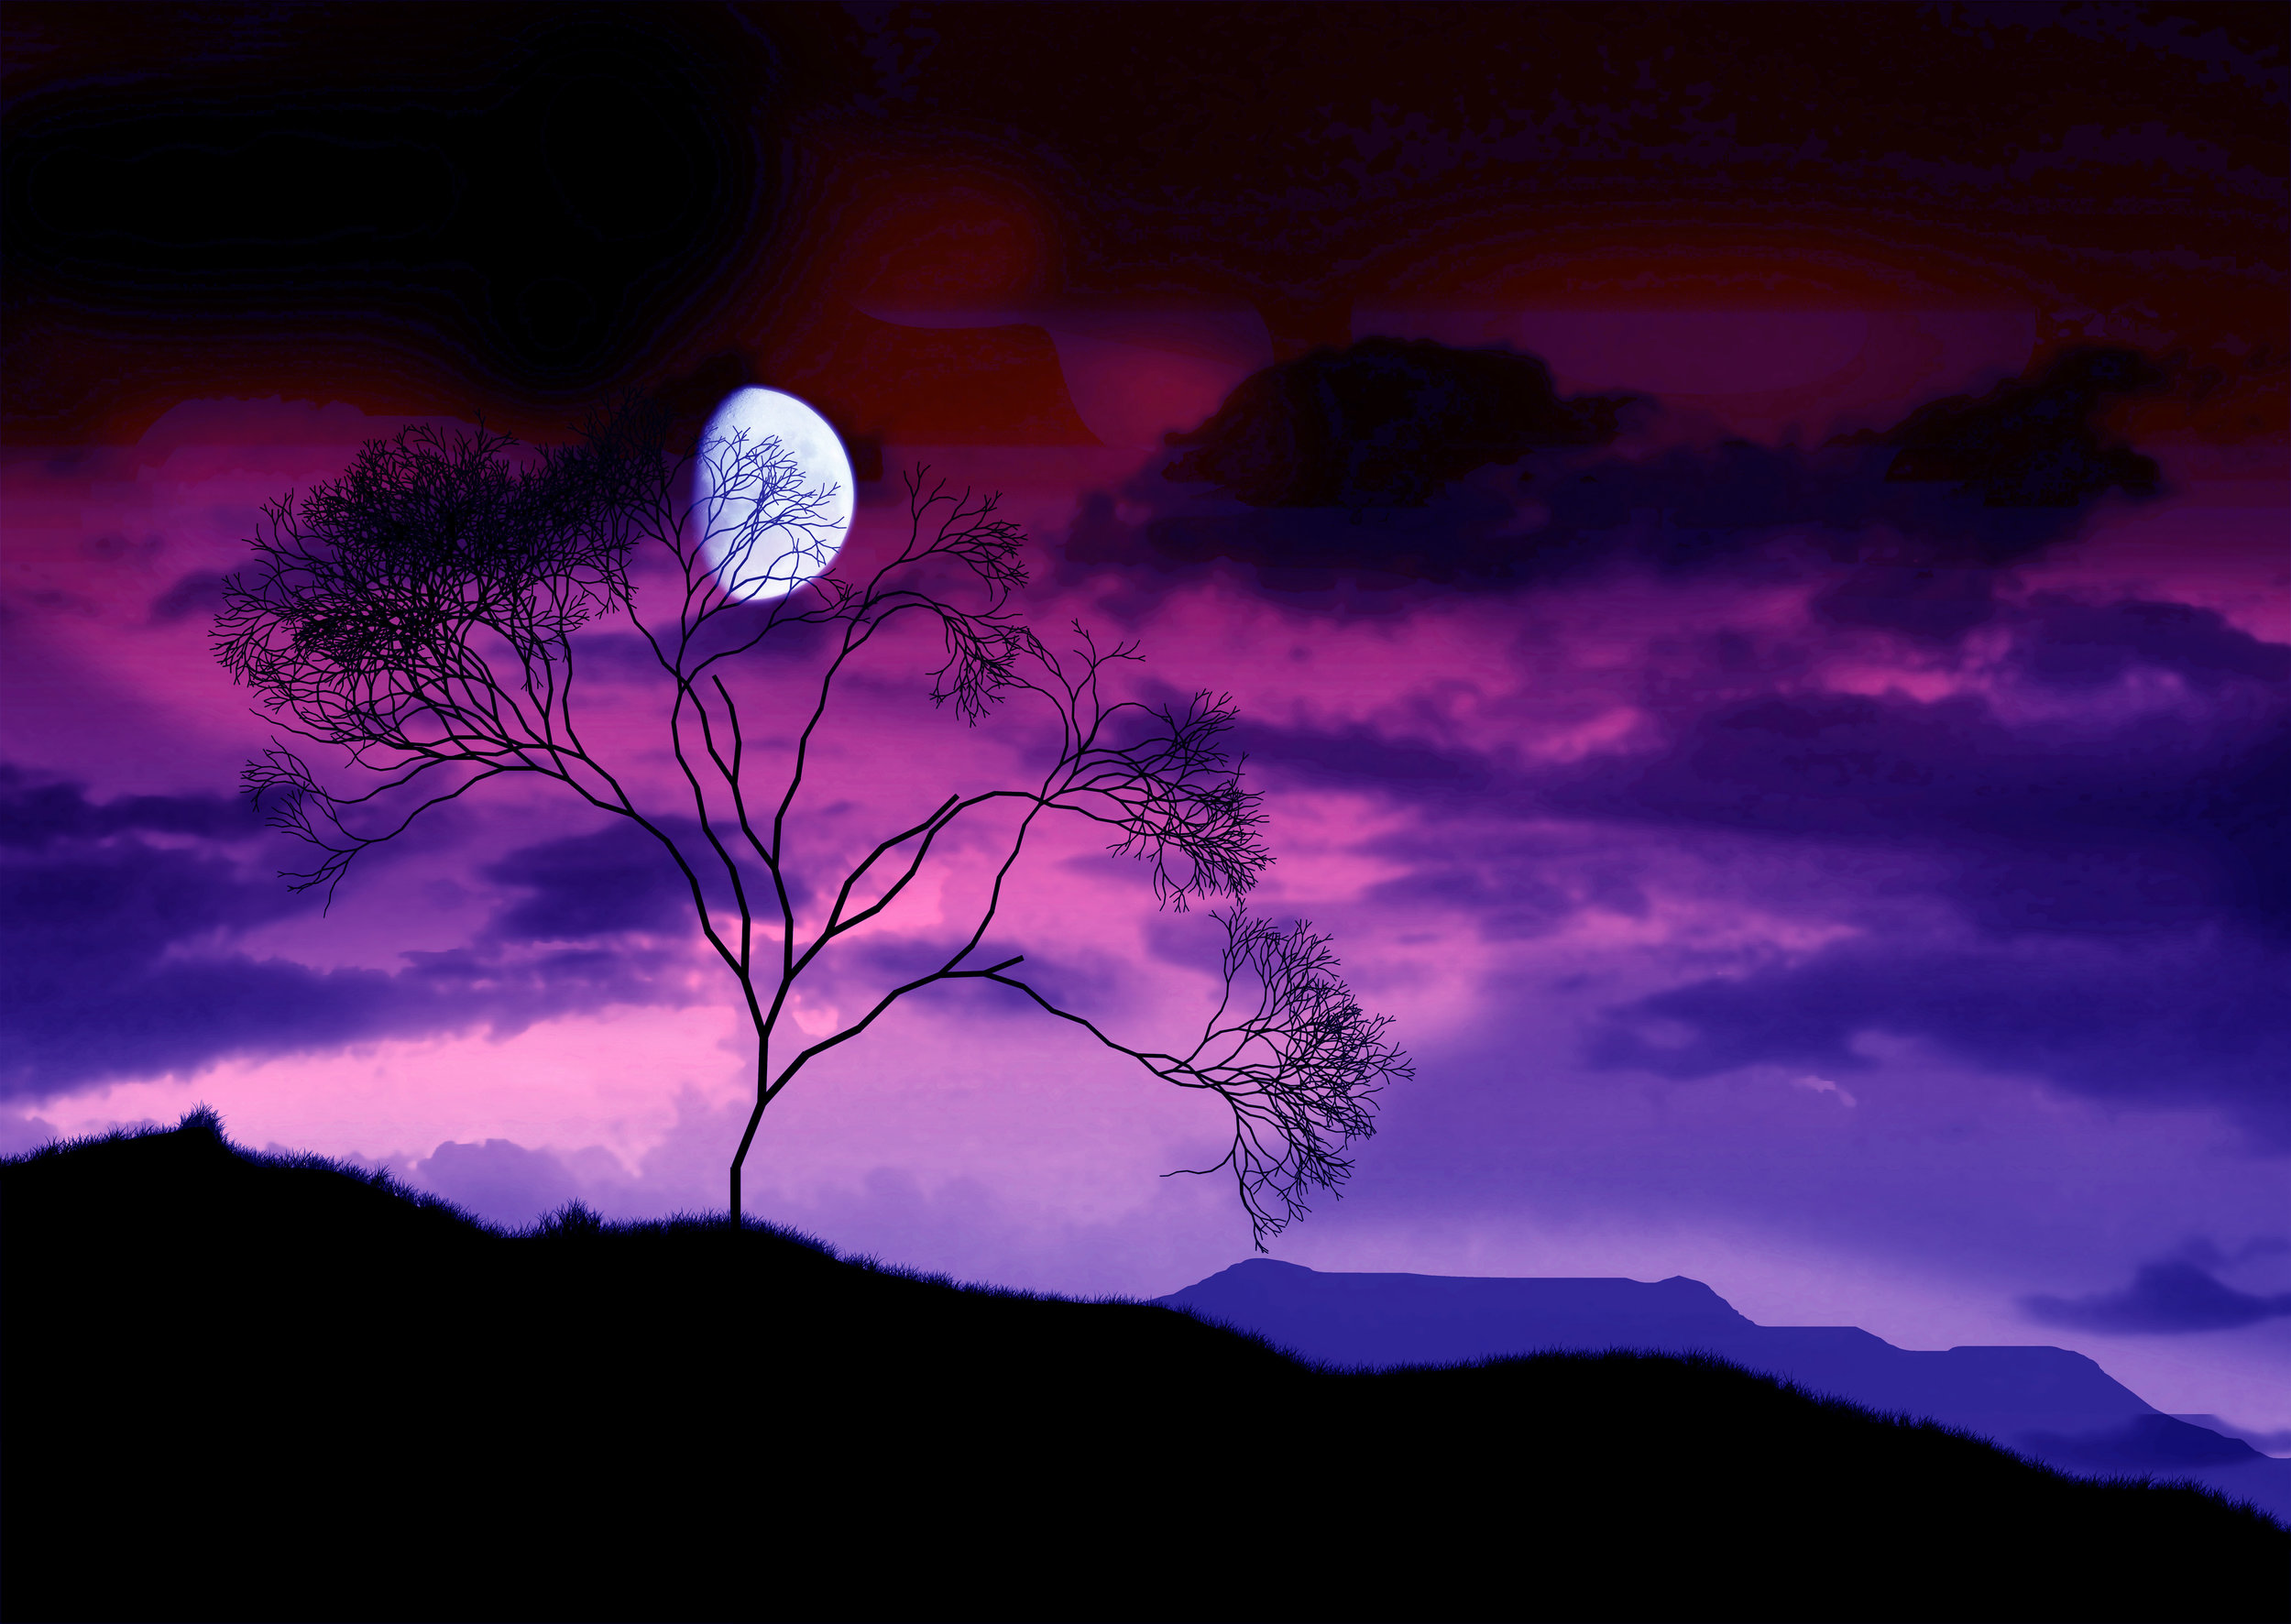 full-moon-with-purple-background.jpg